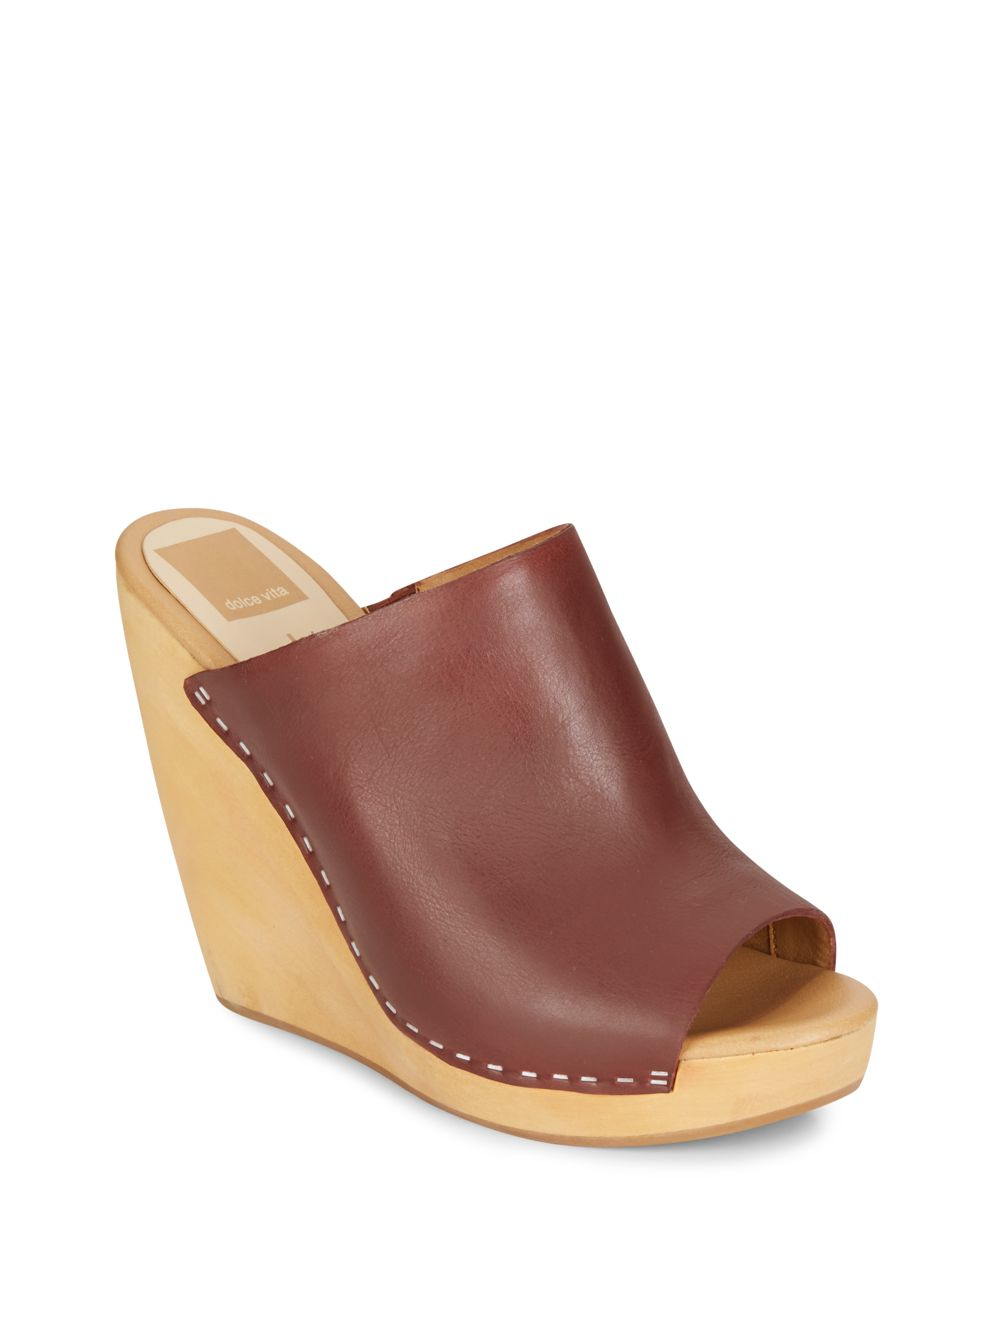 dolce vita connee leather platform wedge sandals in brown